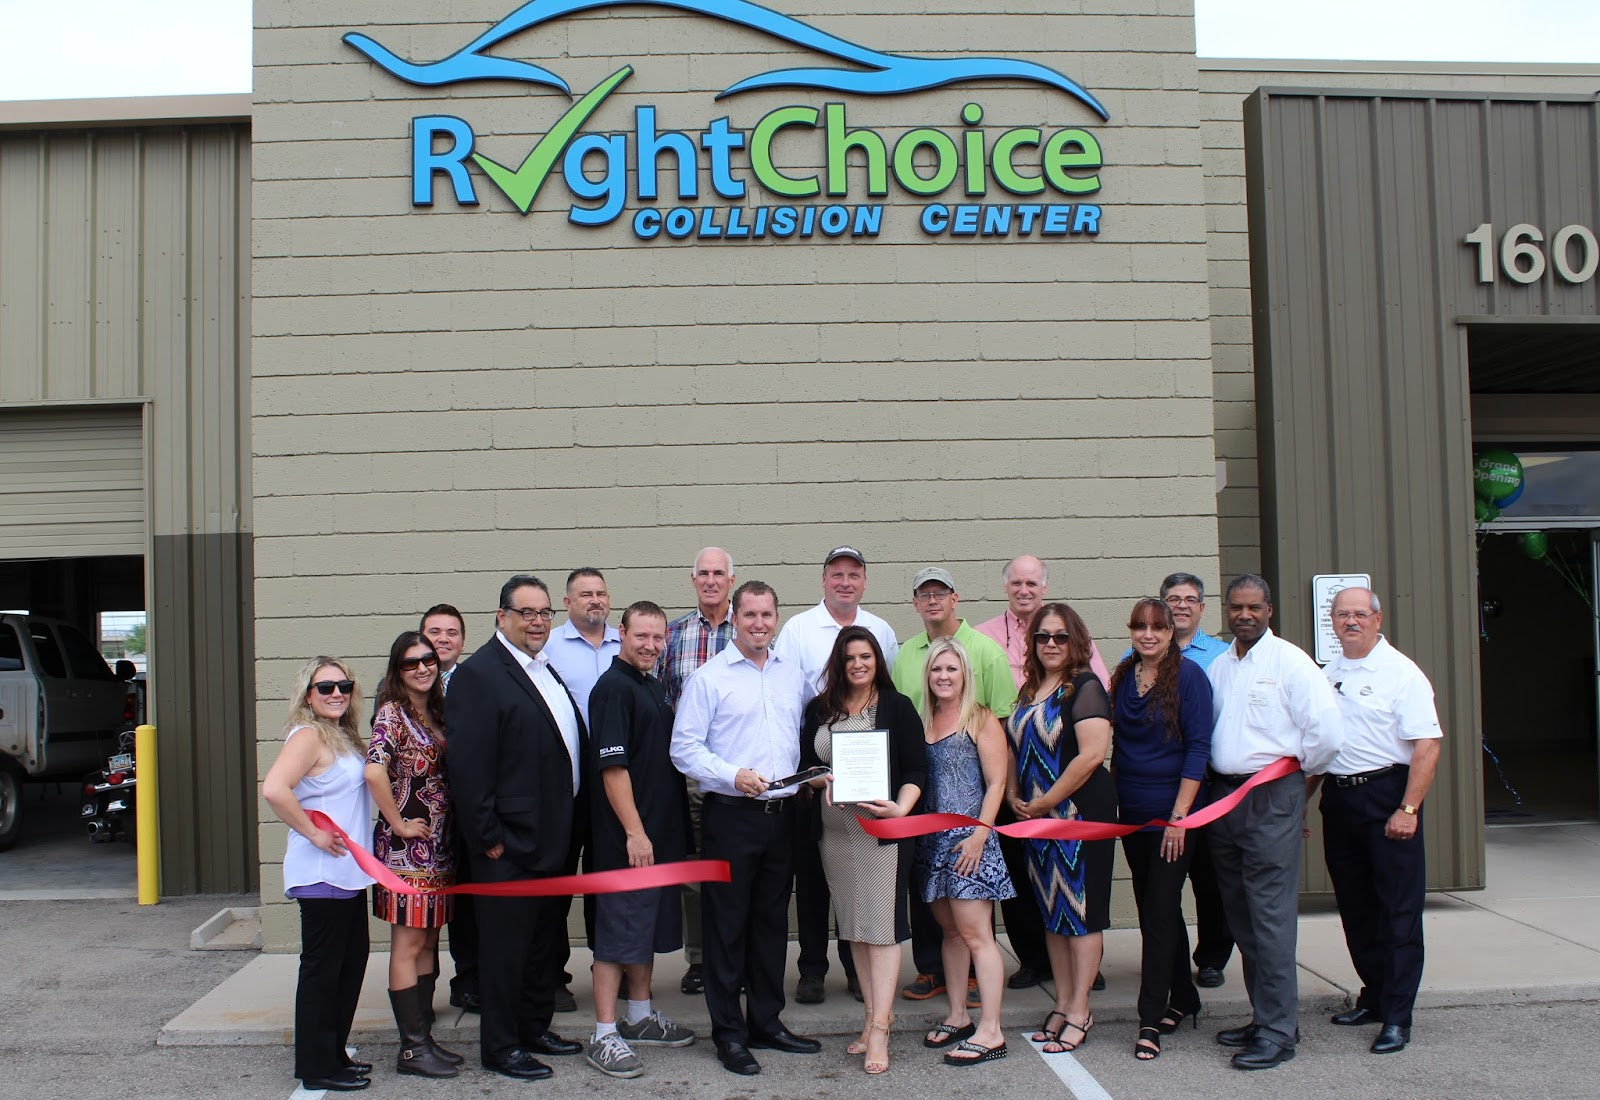 """""""A big thank you to all who took the time to celebrate our grand opening! We are an independent shop here to serve the community the RIGHT WAY, which makes us the RIGHT CHOICE each and every time. We look forward to serving the automotive needs of the Tucson community.""""  Right Choice Collision Center 1601 E. 22nd Street, 85713 (520) 867-6021"""